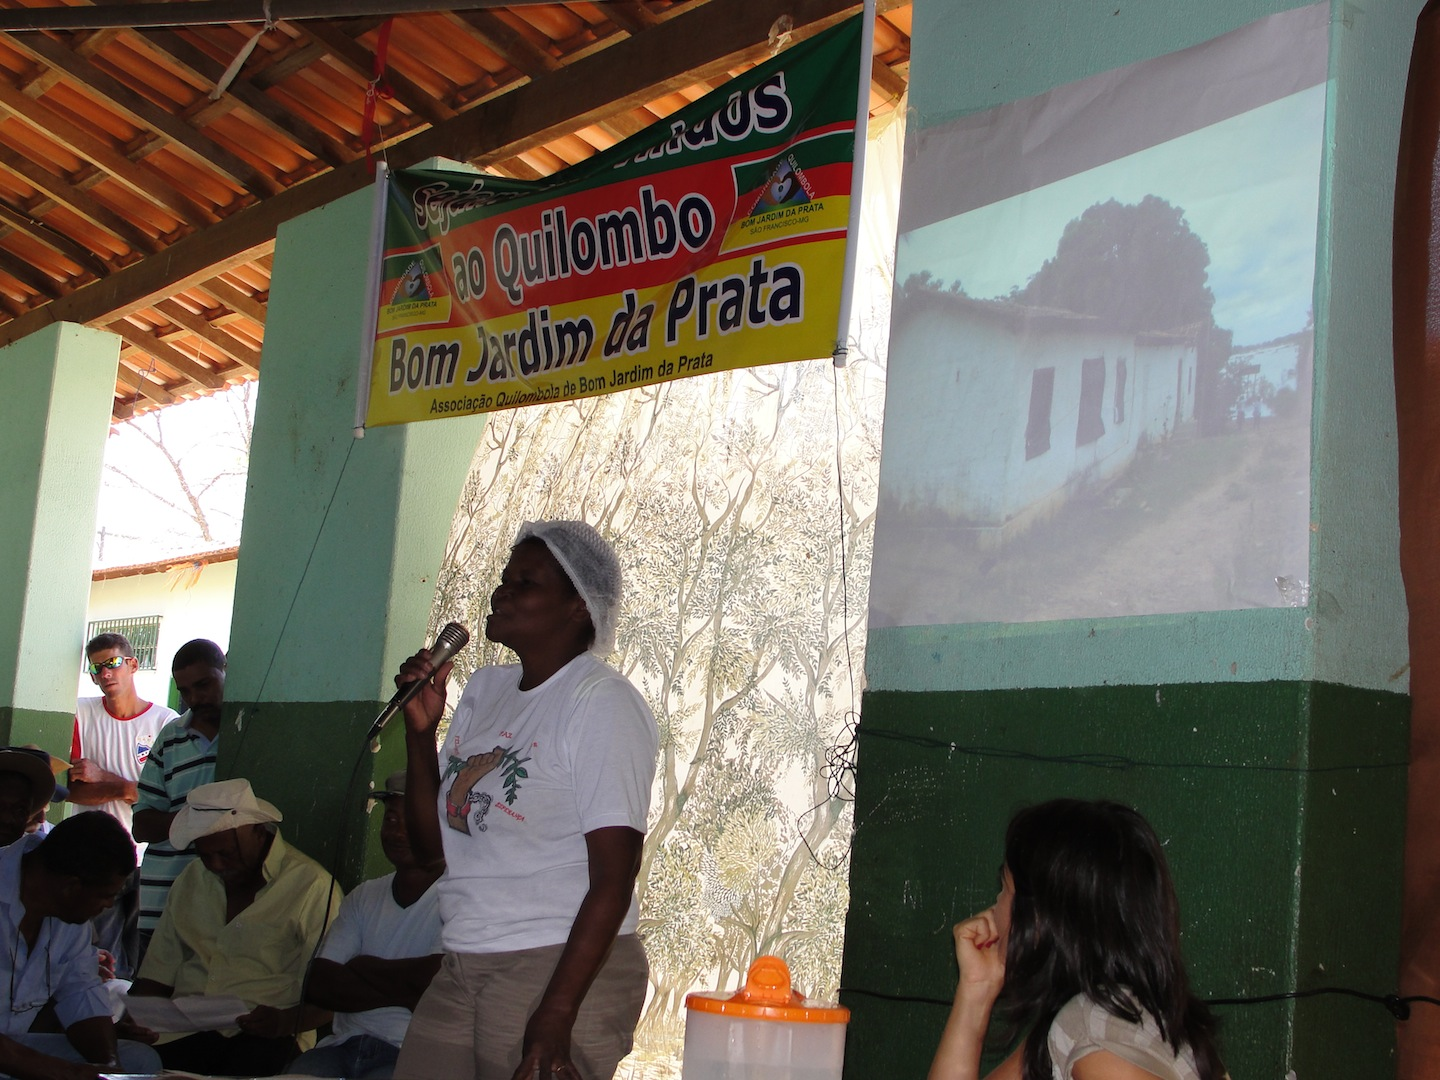 Meeting to approve geographical limits of Quilombo 4